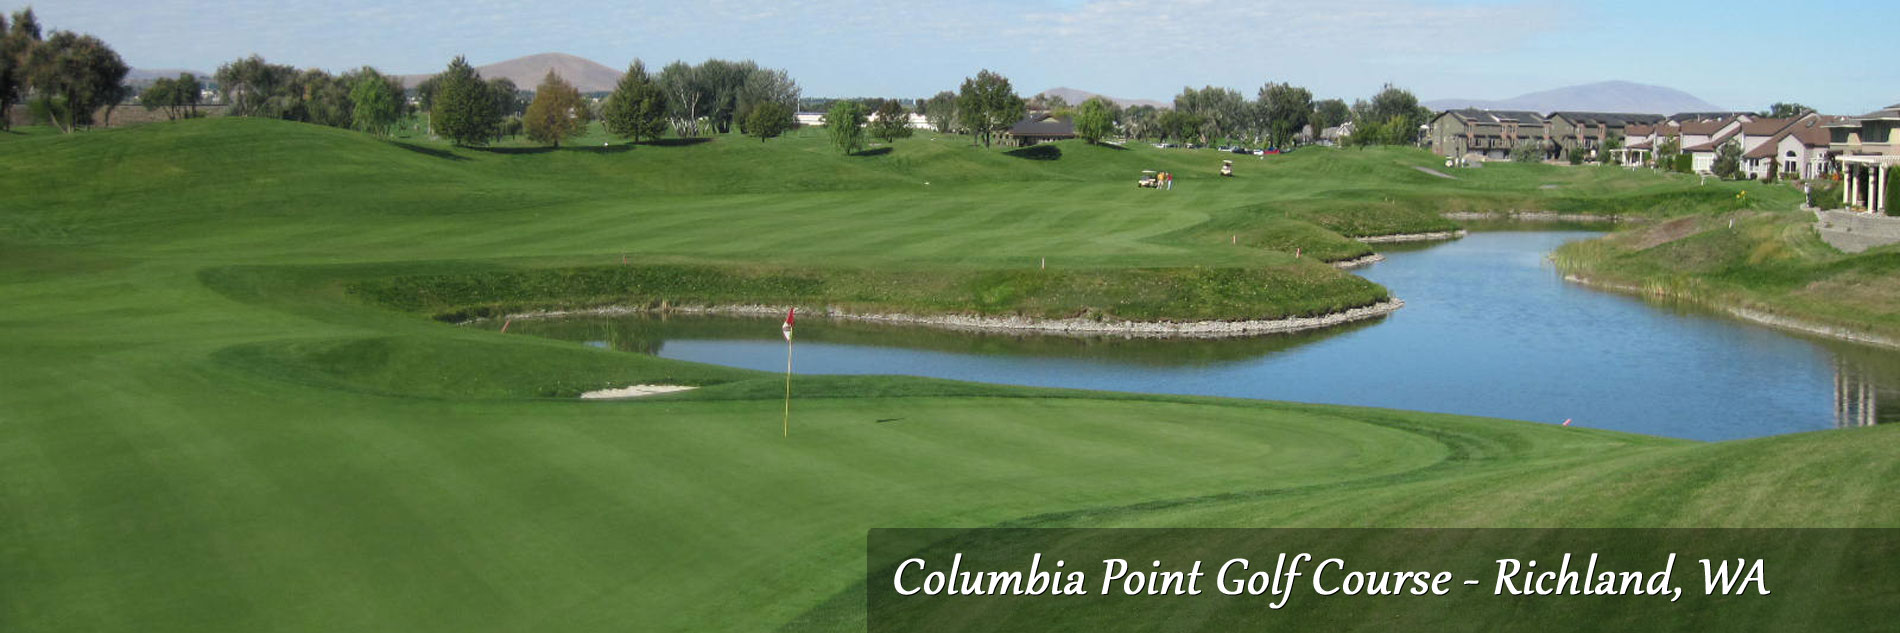 Columbia Point Golf Course